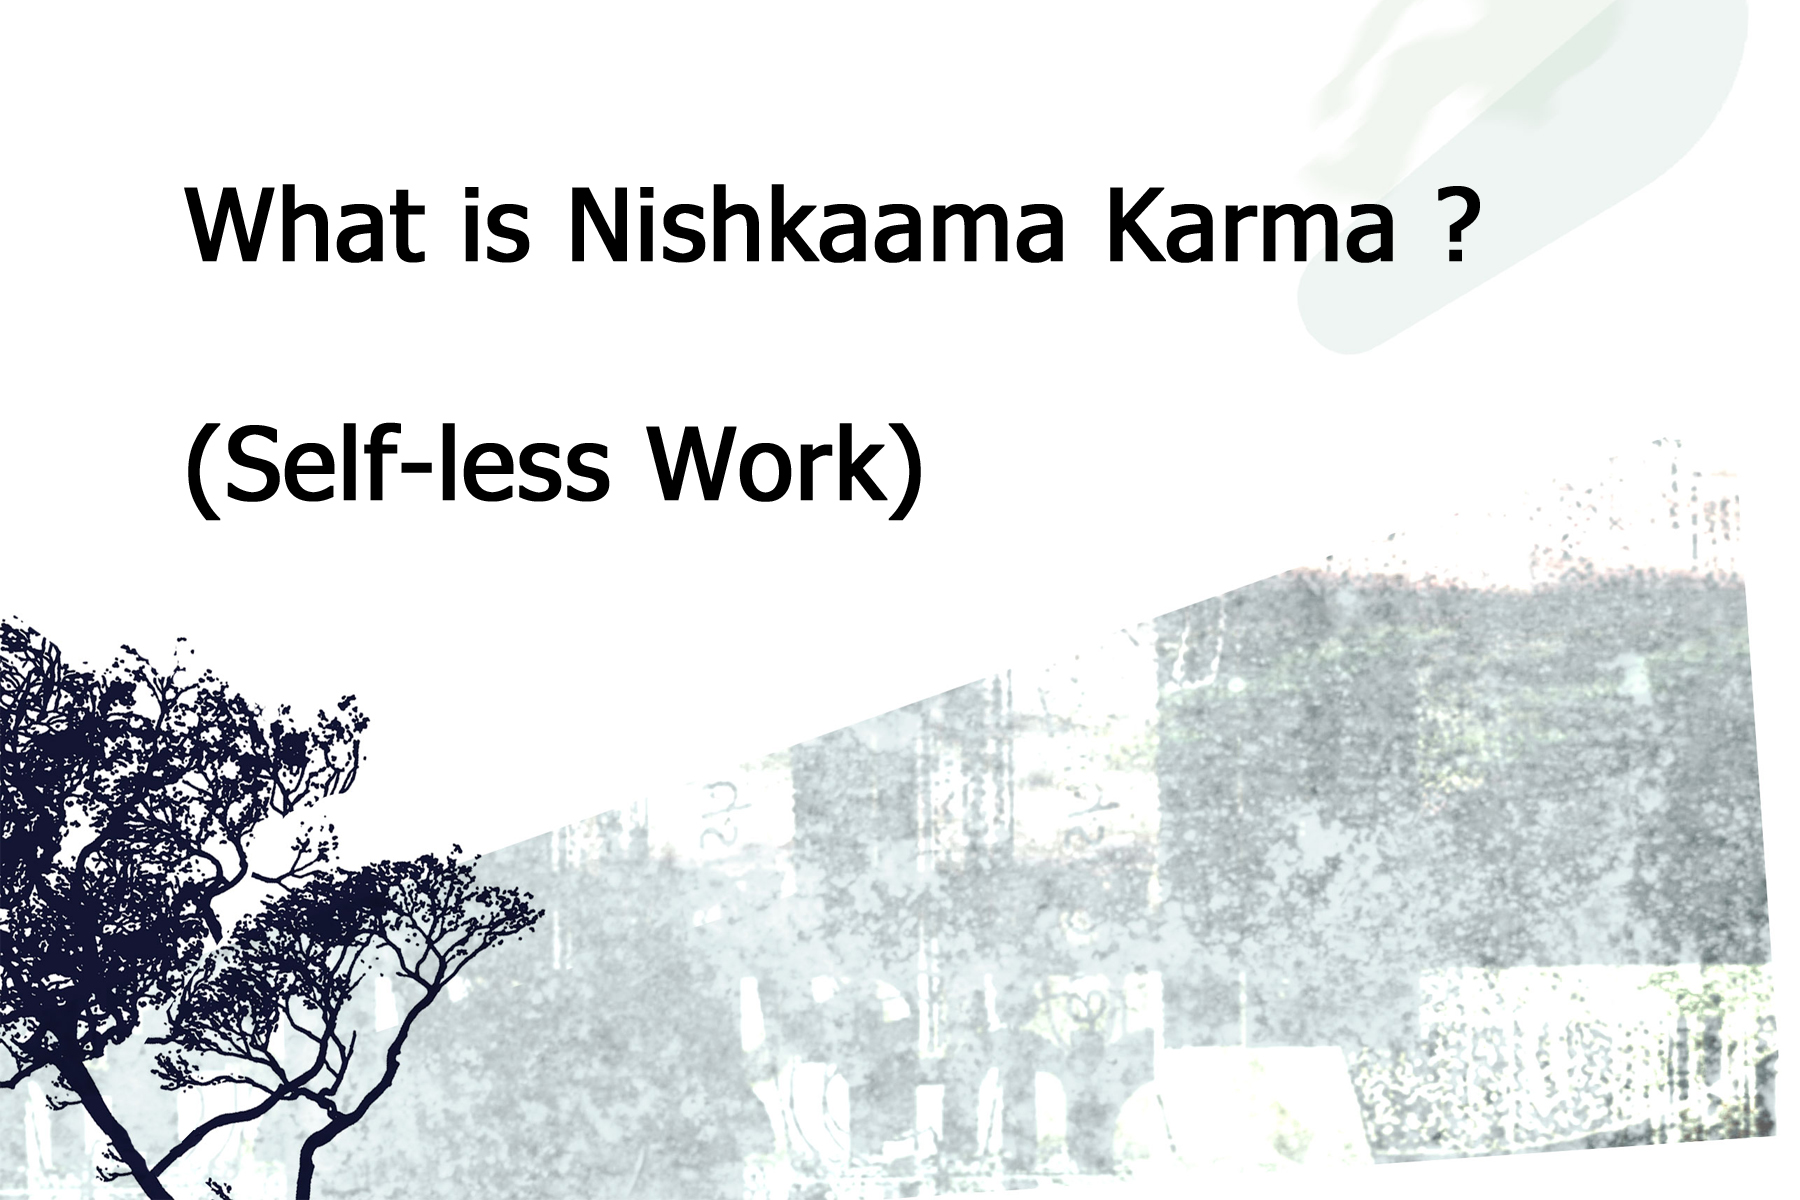 What is Nishkaama Karma (Selfless Work) ?